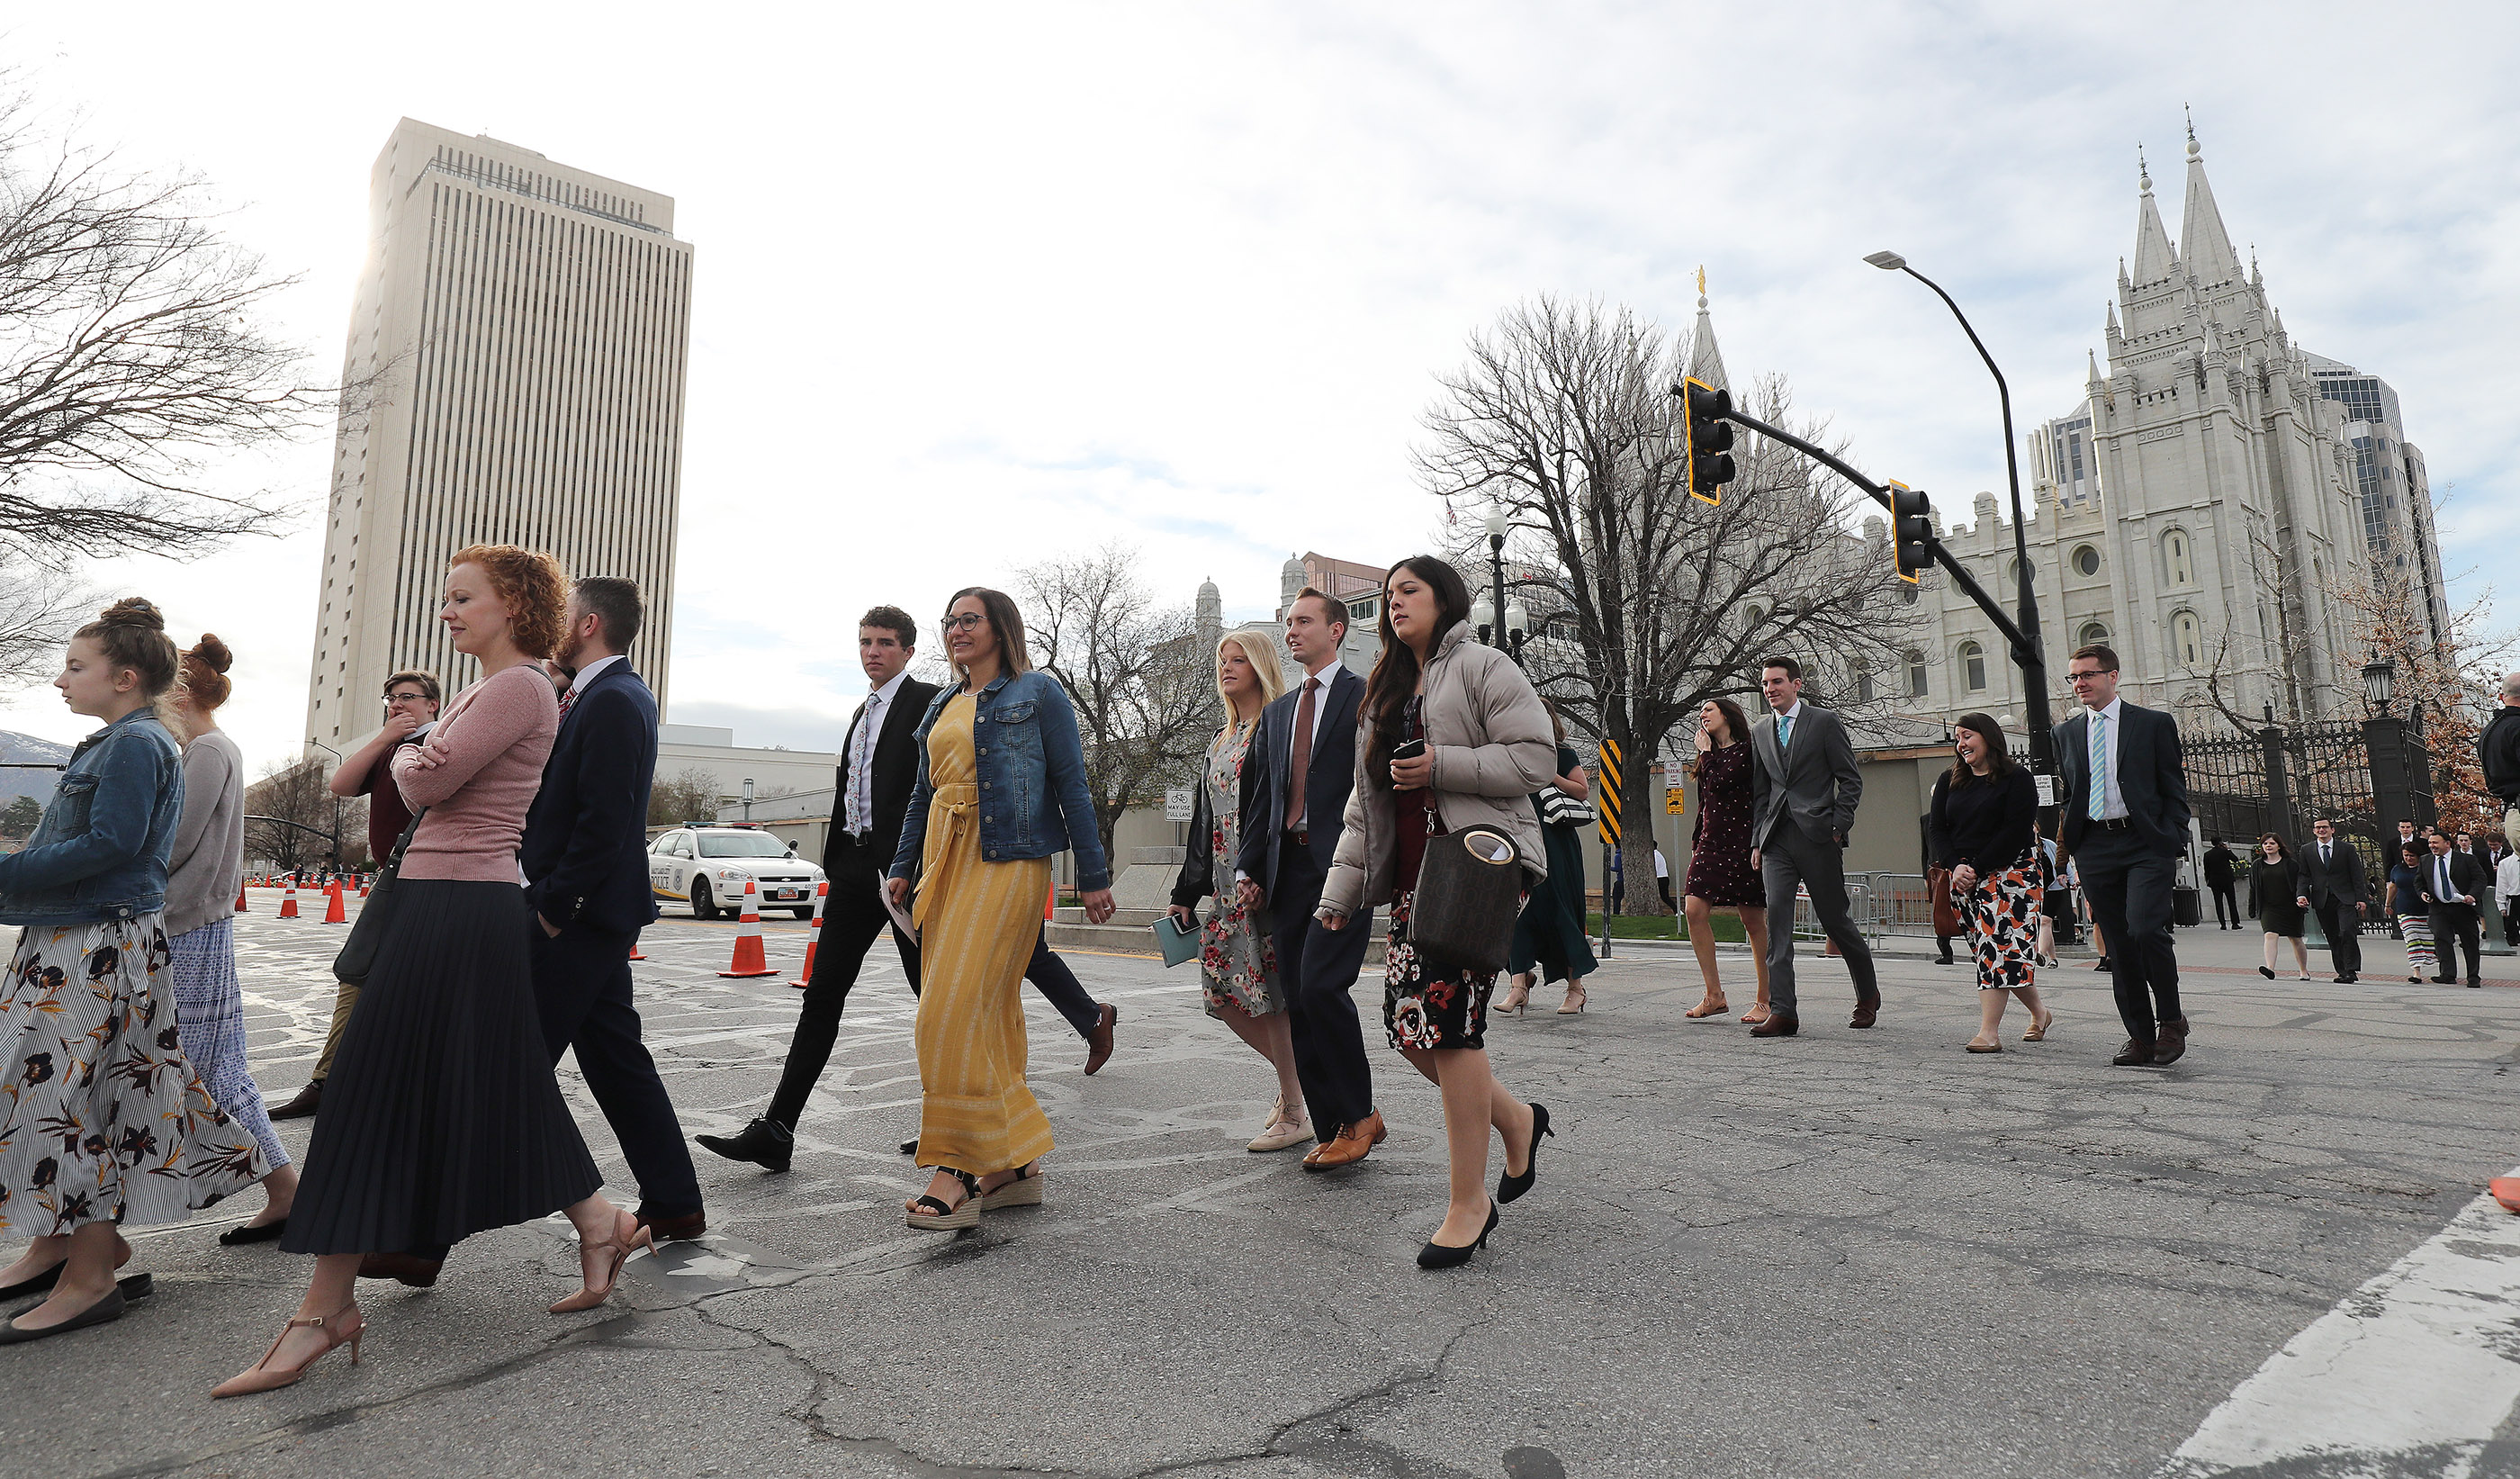 Conferencegoers arrive at the Conference Center for the Sunday morning session 189th Annual General Conference of The Church of Jesus Christ of Latter-day Saints in Salt Lake City on Sunday, April 7, 2019.